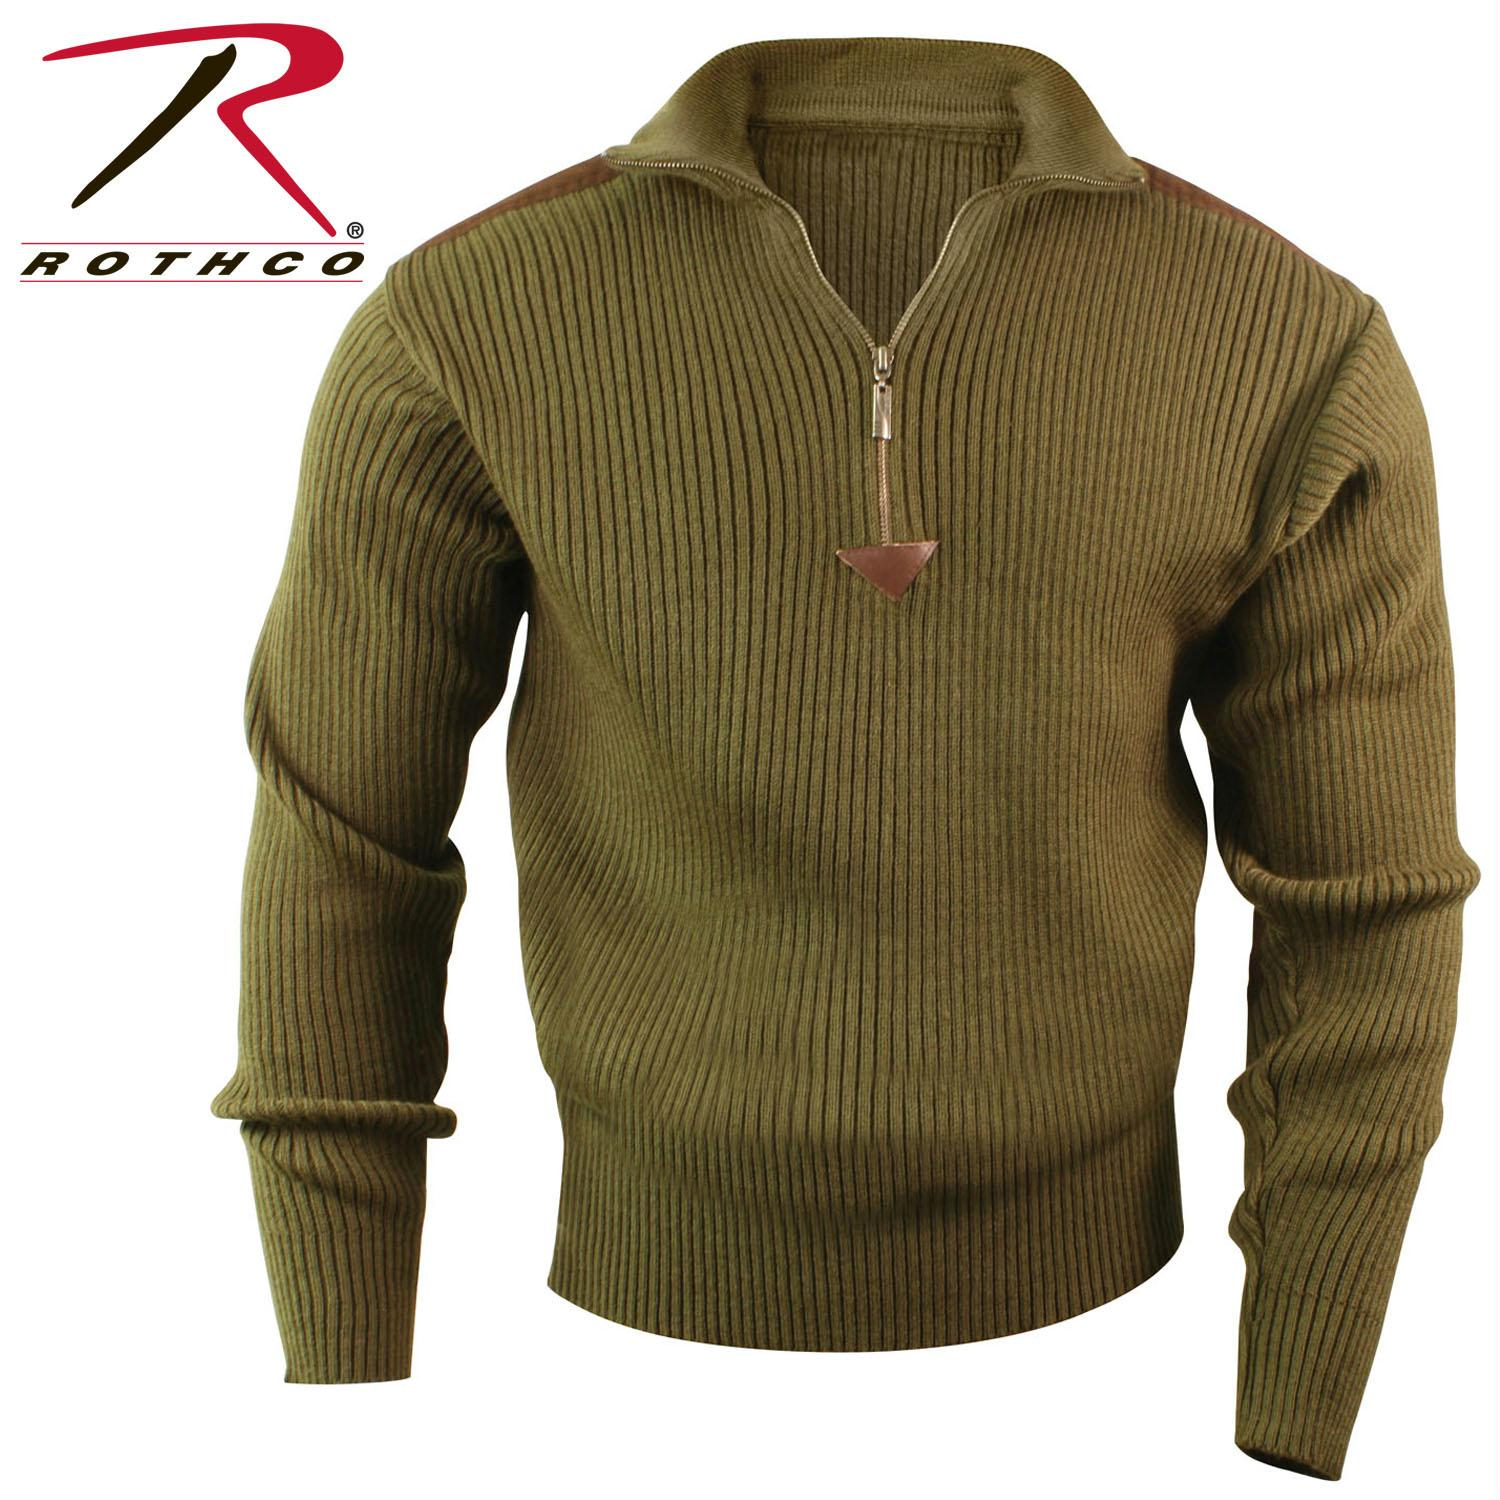 Rothco Quarter Zip Acrylic Commando Sweater - Olive Drab / S